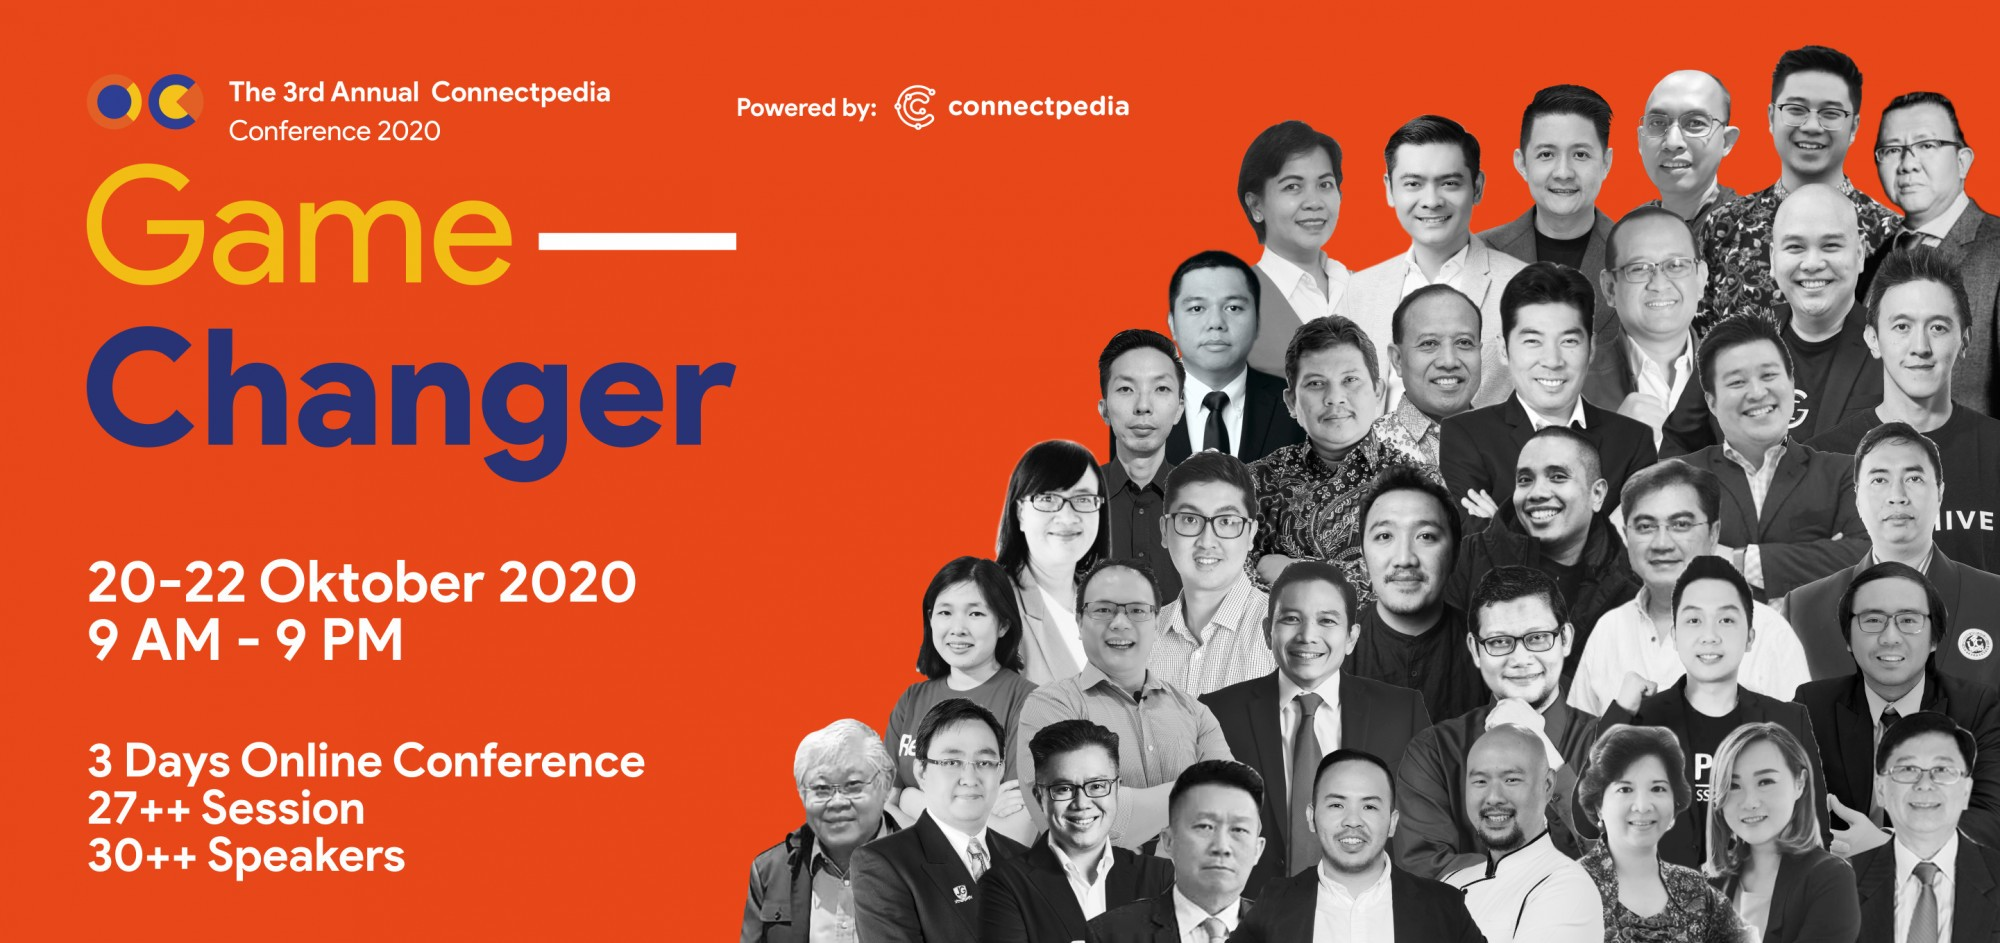 Connectpedia Conference 2020 Game Changer